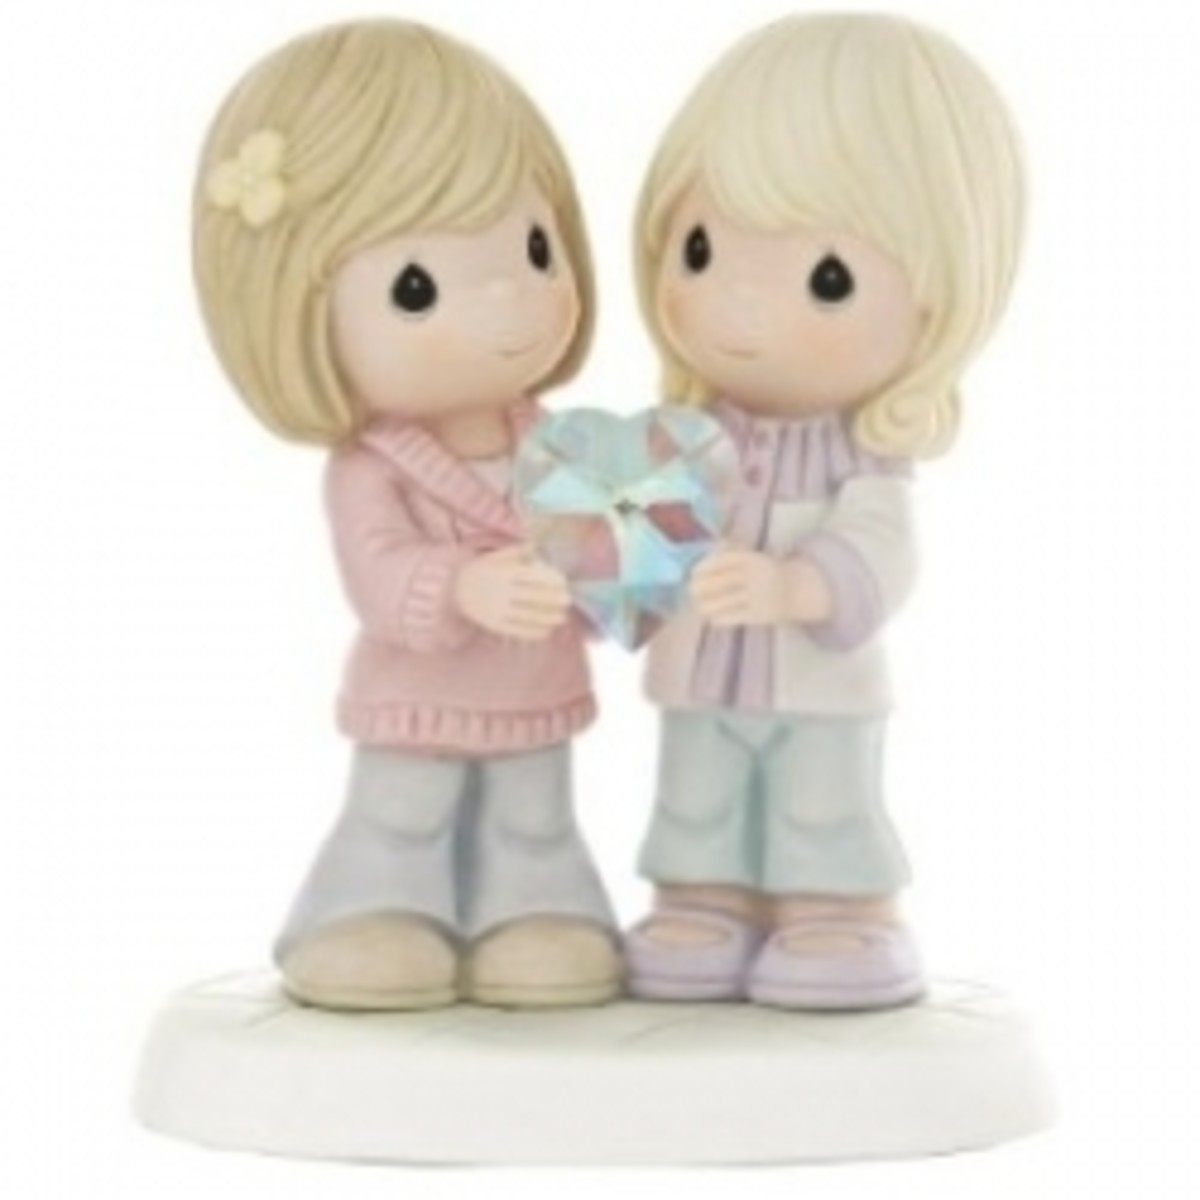 friendship-gifts-for-women-from-friends